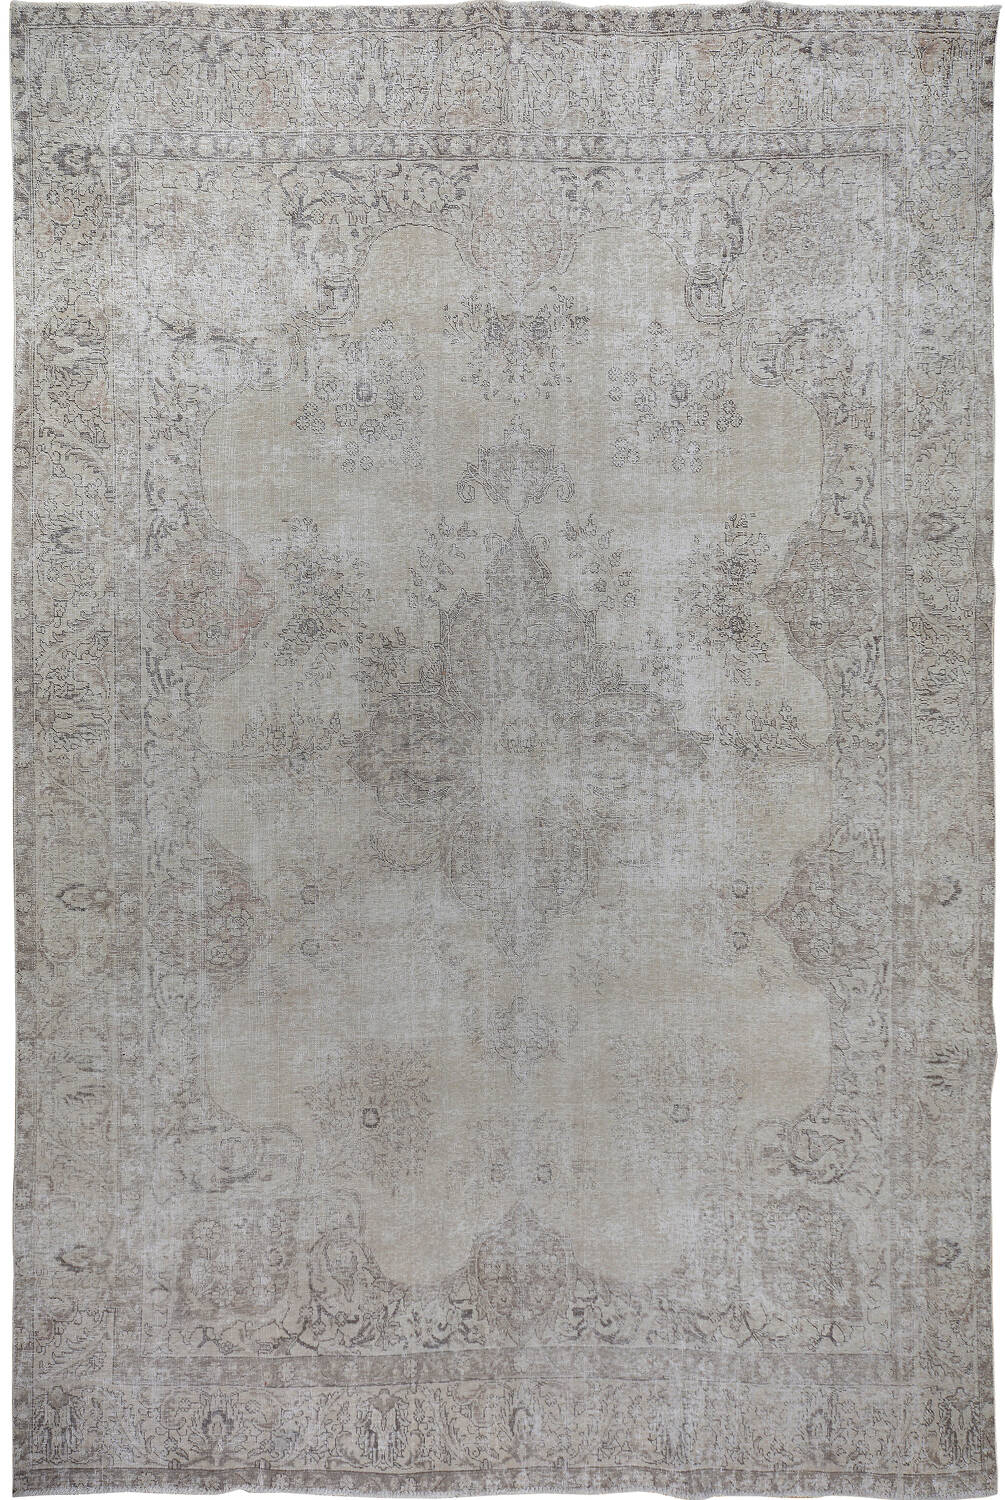 Antique Muted Floral Tabriz Persian Distressed Area Rug 9x13 image 1